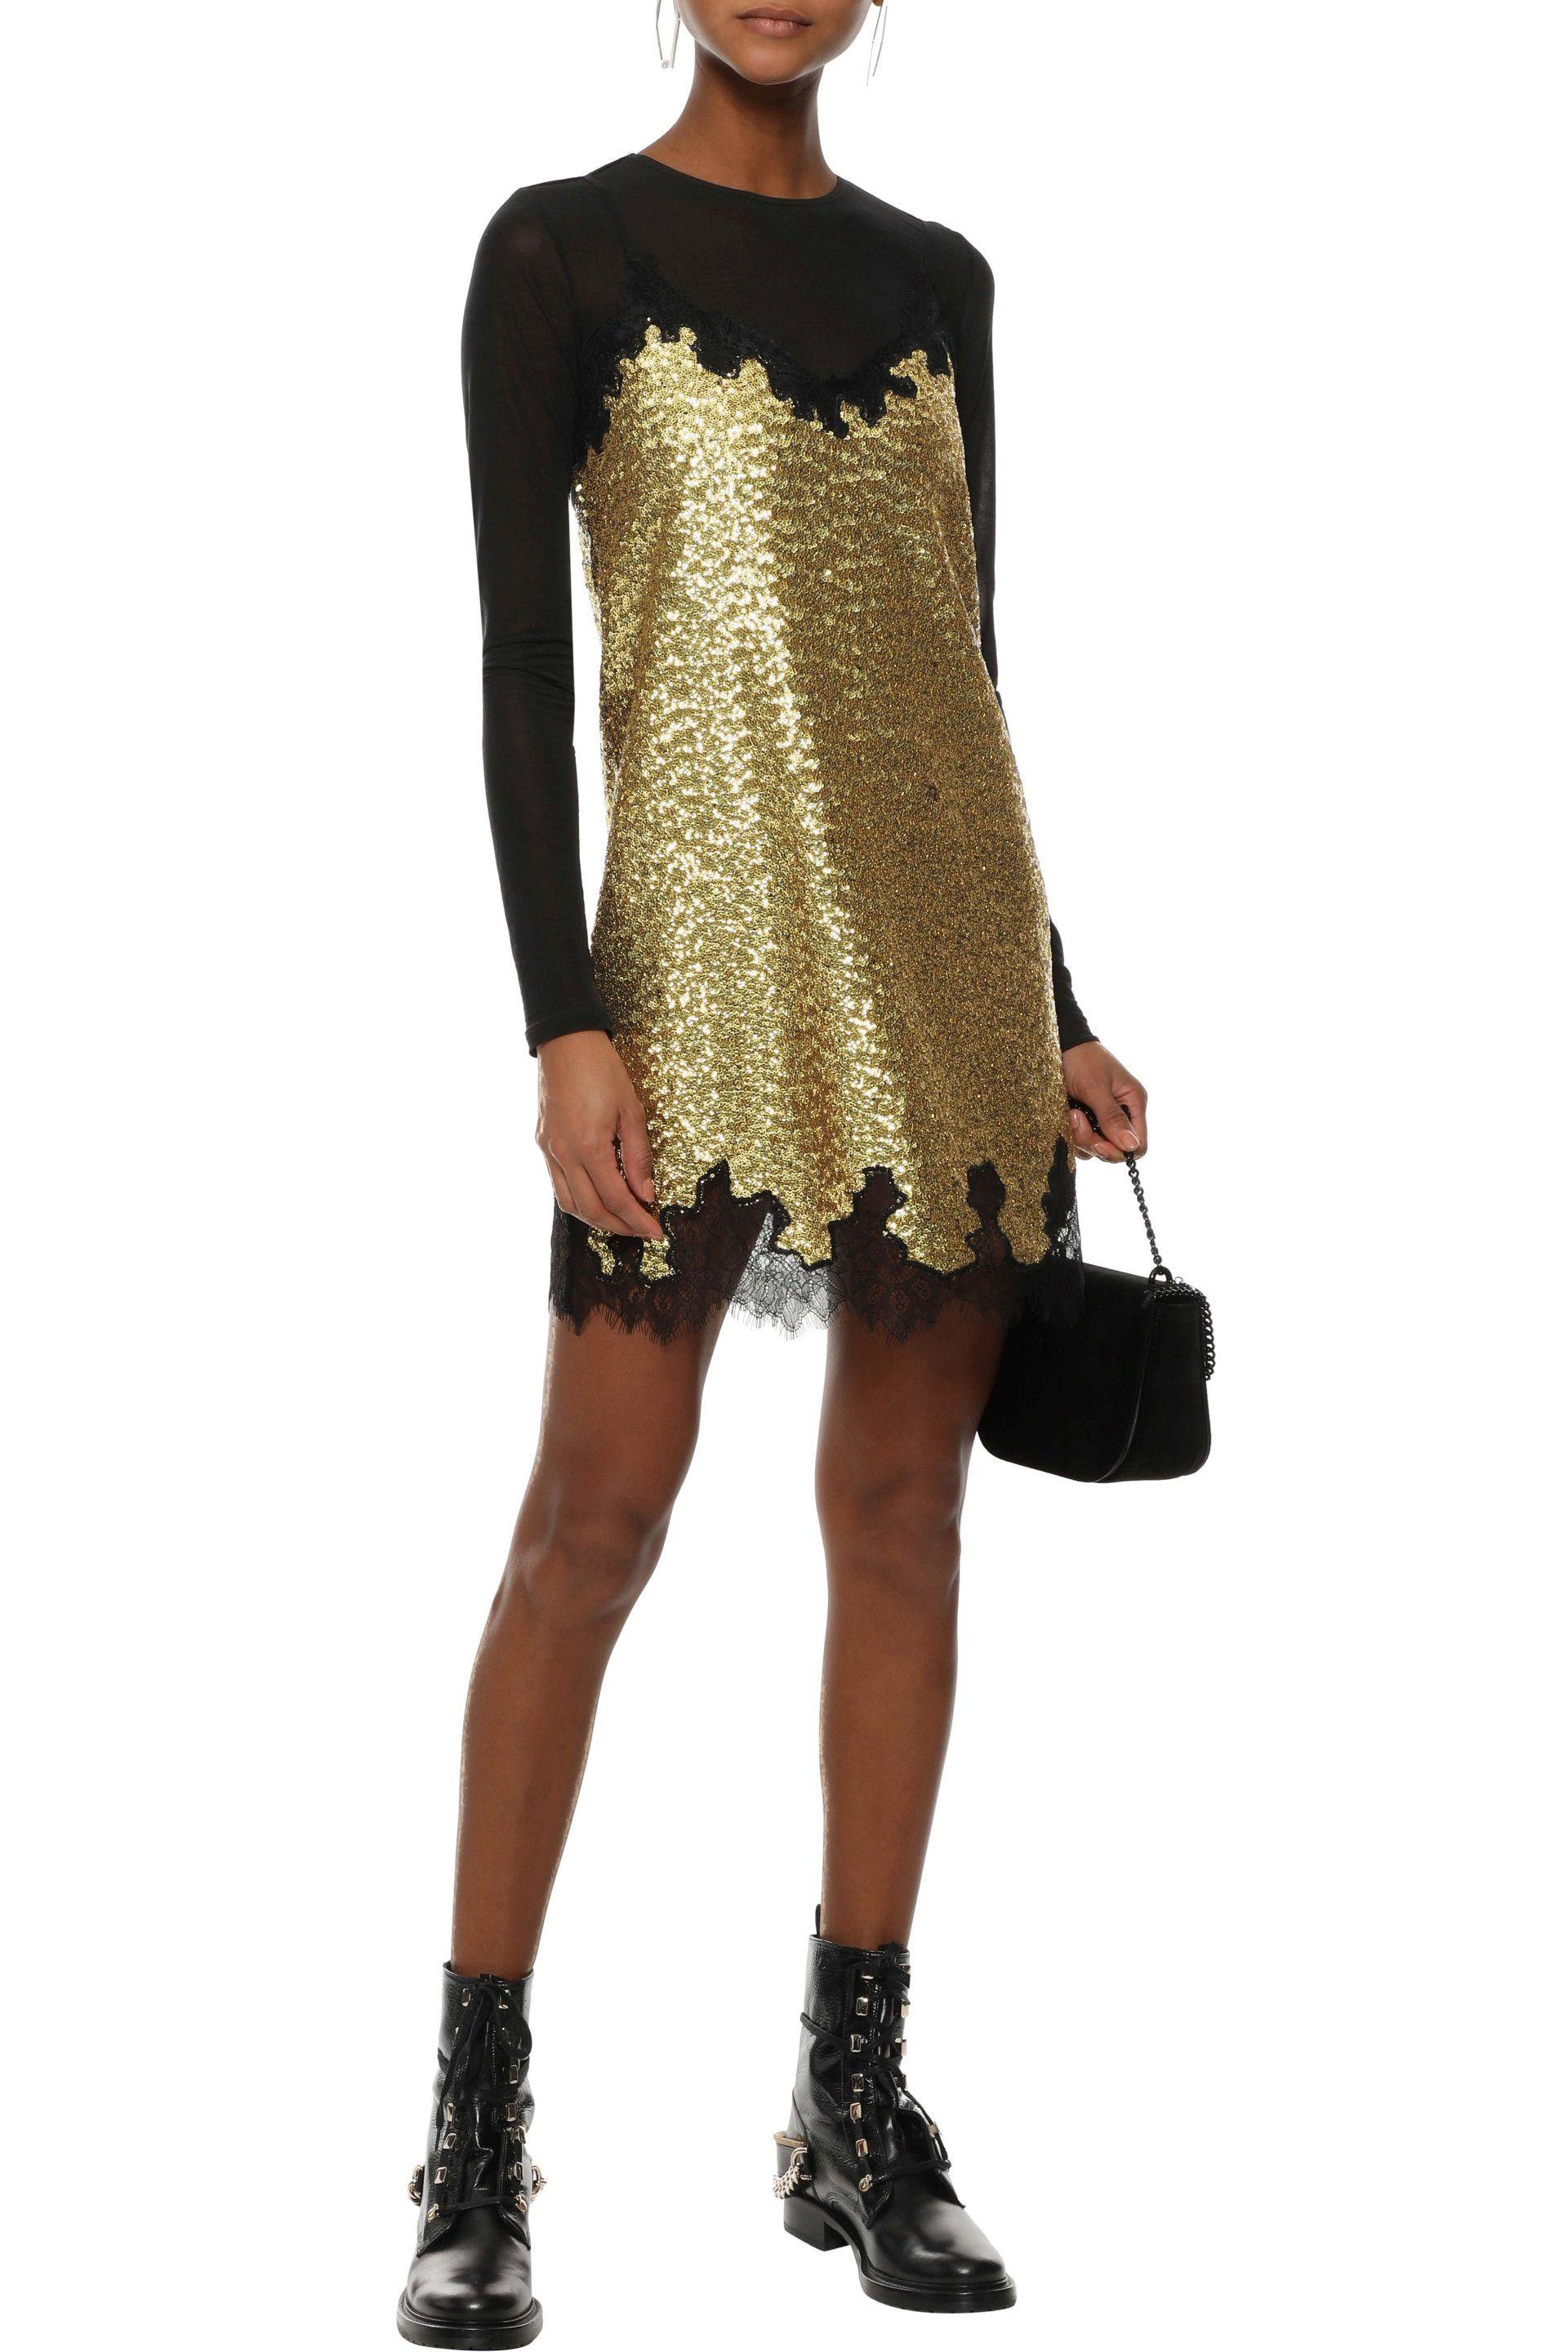 48b21555 ... Lace-trimmed Sequined Chantilly Lace Mini Slip Dress Gold -. View  fullscreen